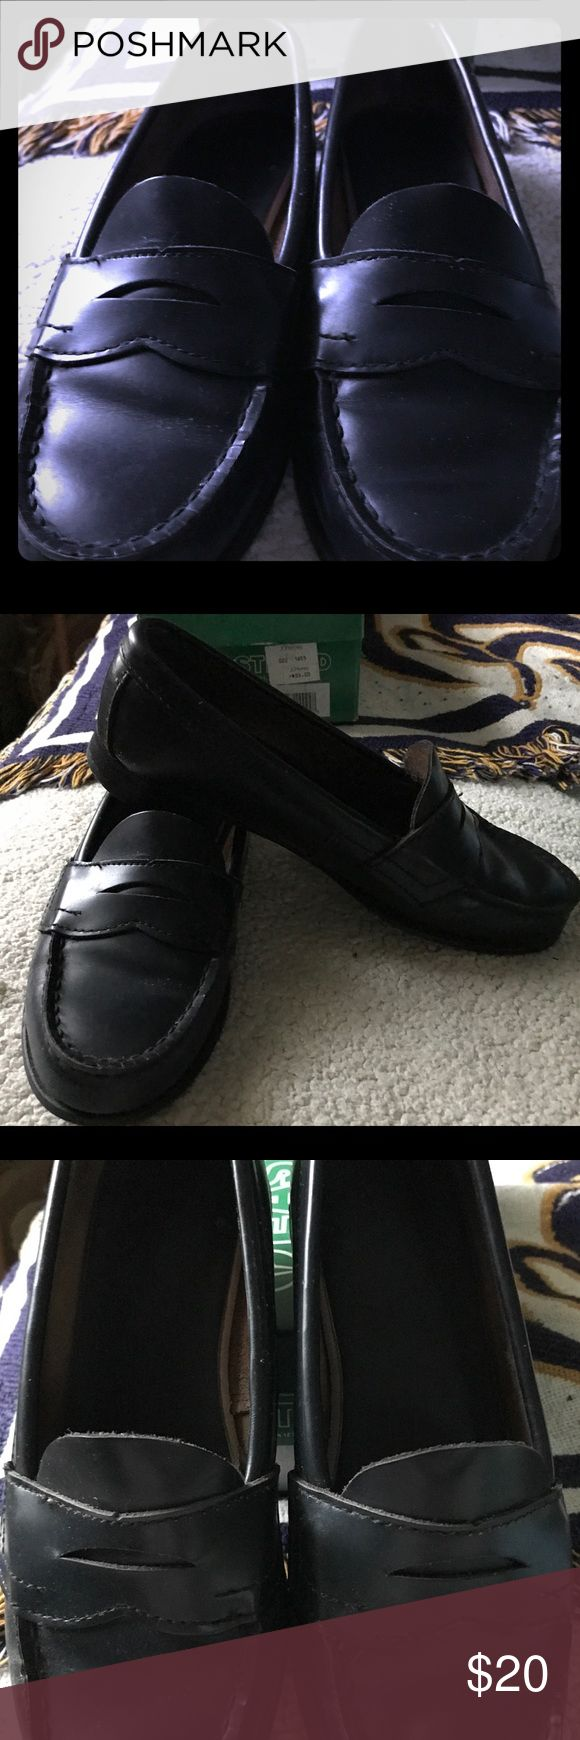 Navy blue penny loafers Super cute!  Navy blue penny loafers.  Used, but in great shape as you can see.  Comes with original box. Eastland Shoes Flats & Loafers